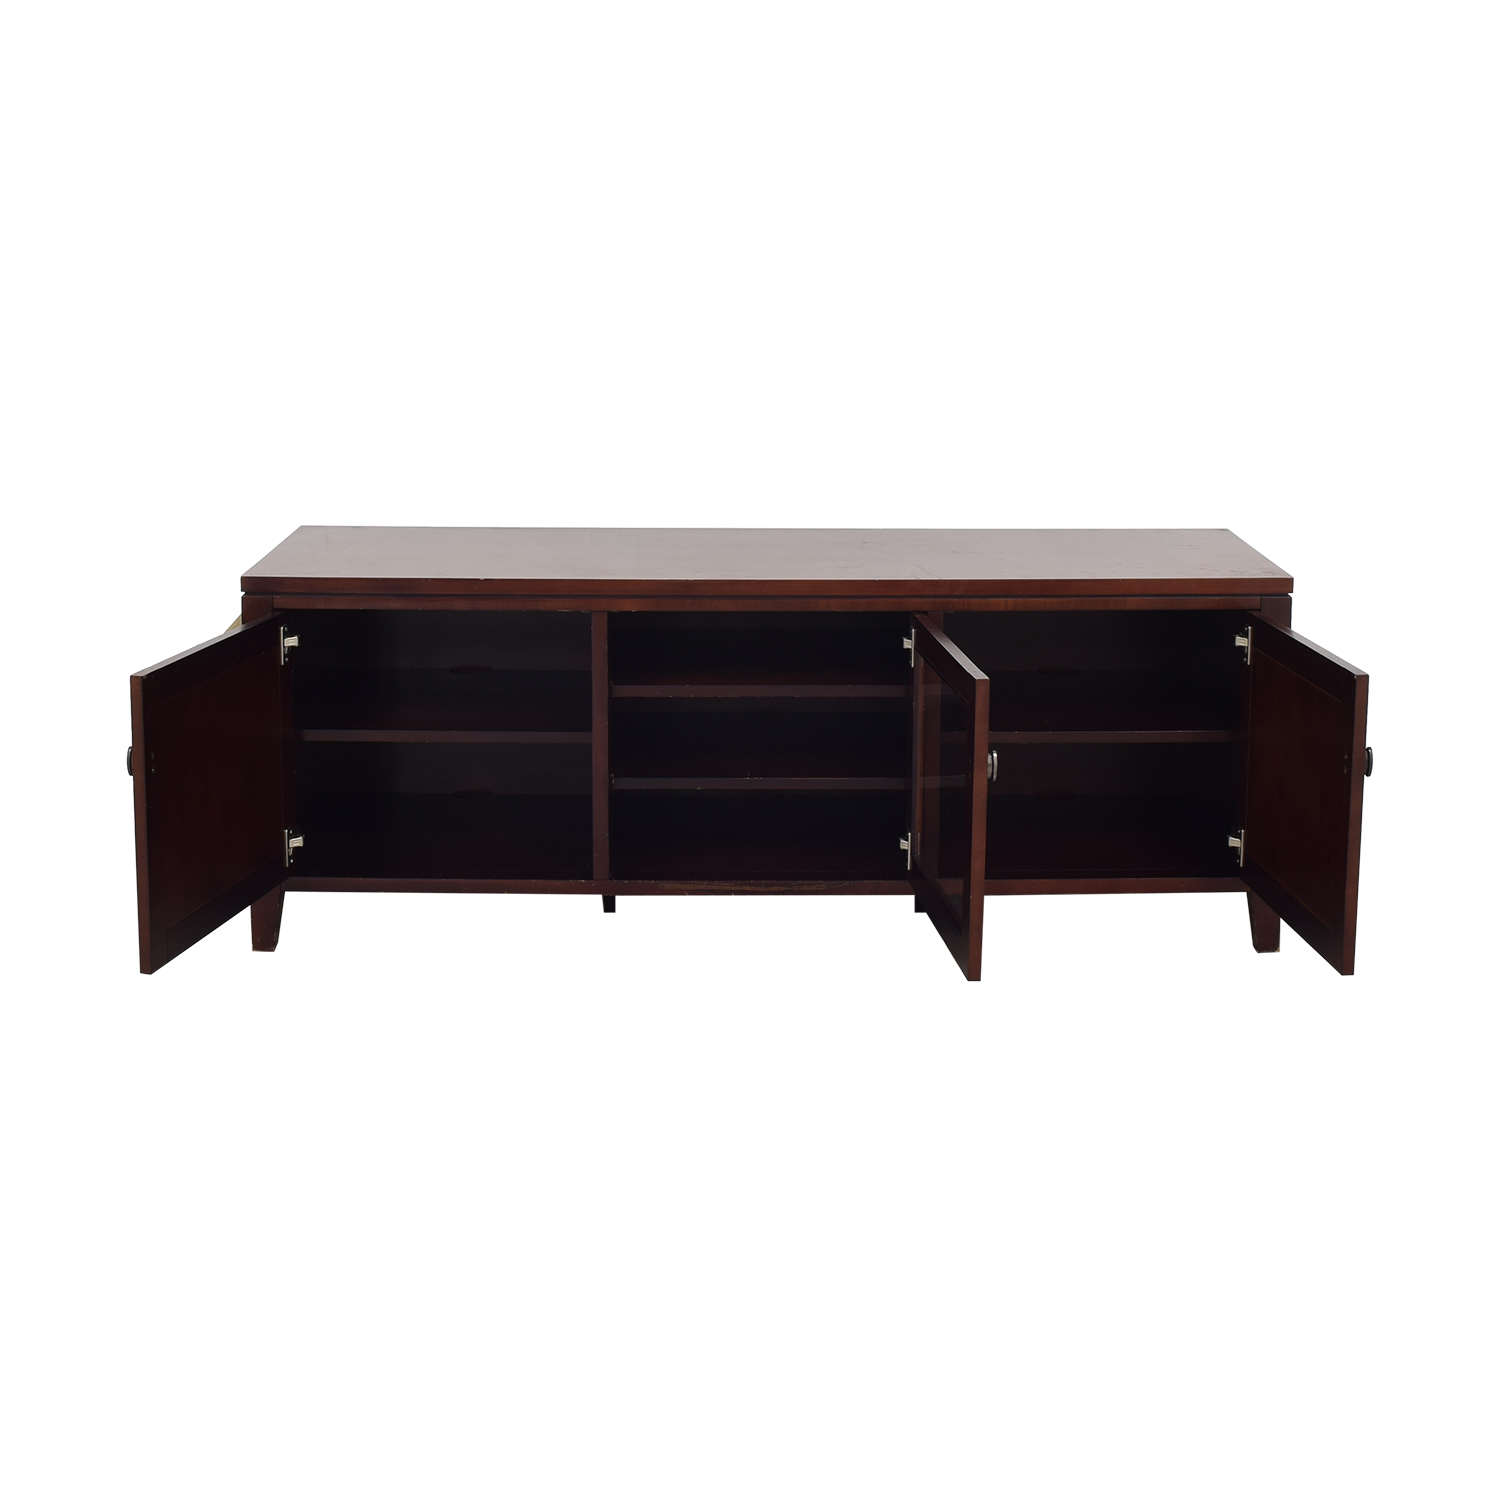 Crate & Barrel Media Console with Cabinets / Media Units